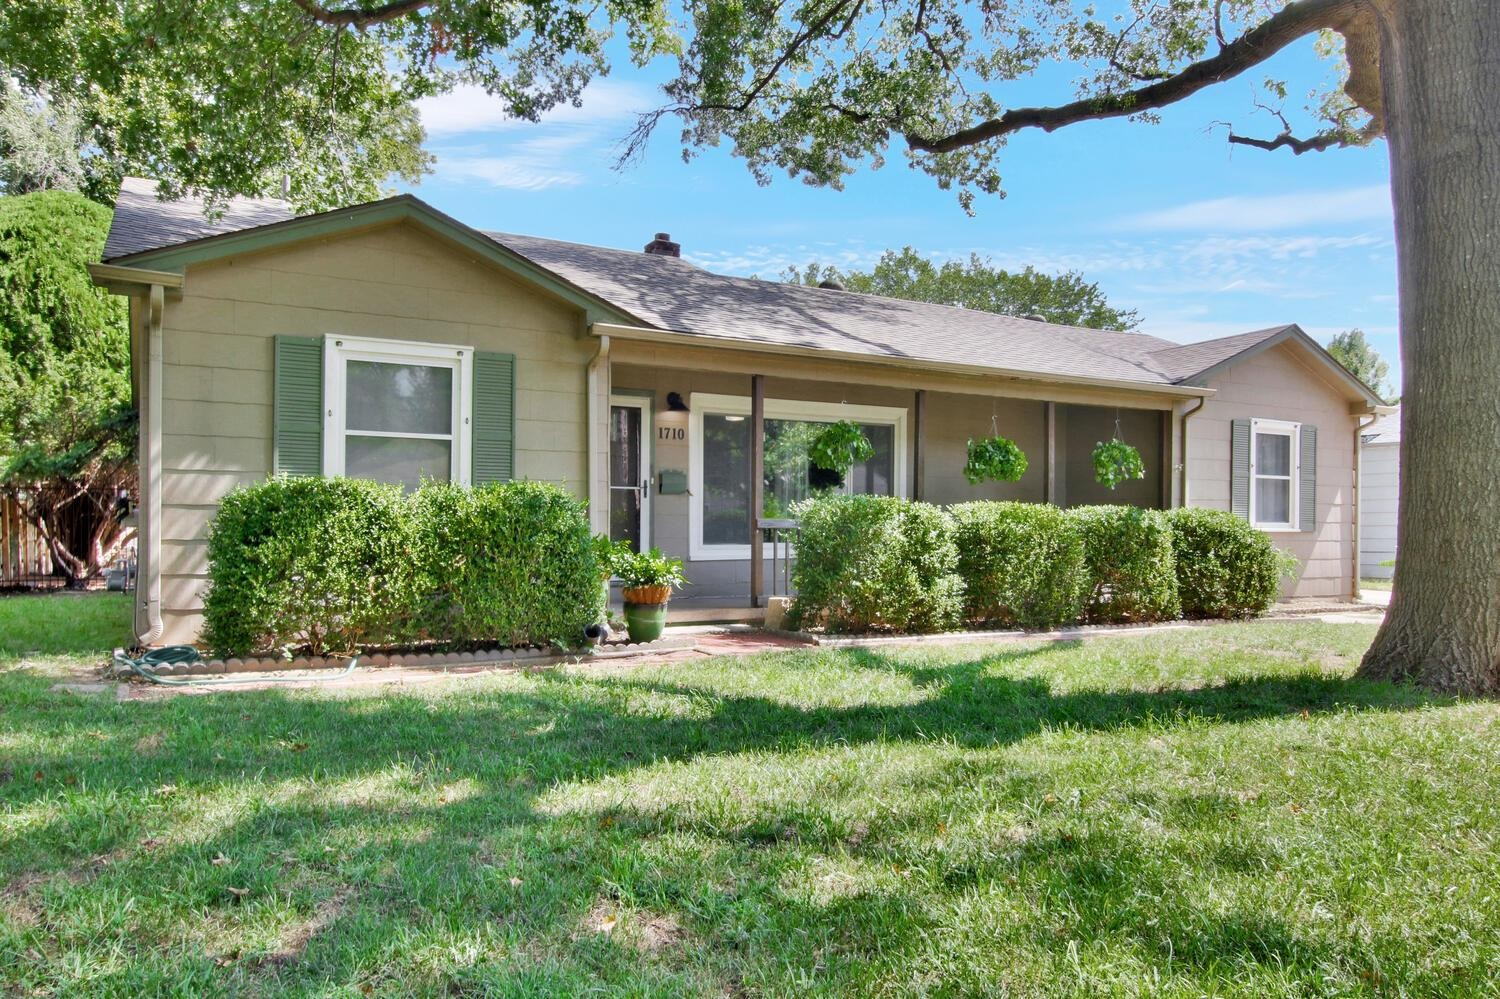 Wonderful rambling ranch in the heart of Riverside. This home features are open floor plan with hard